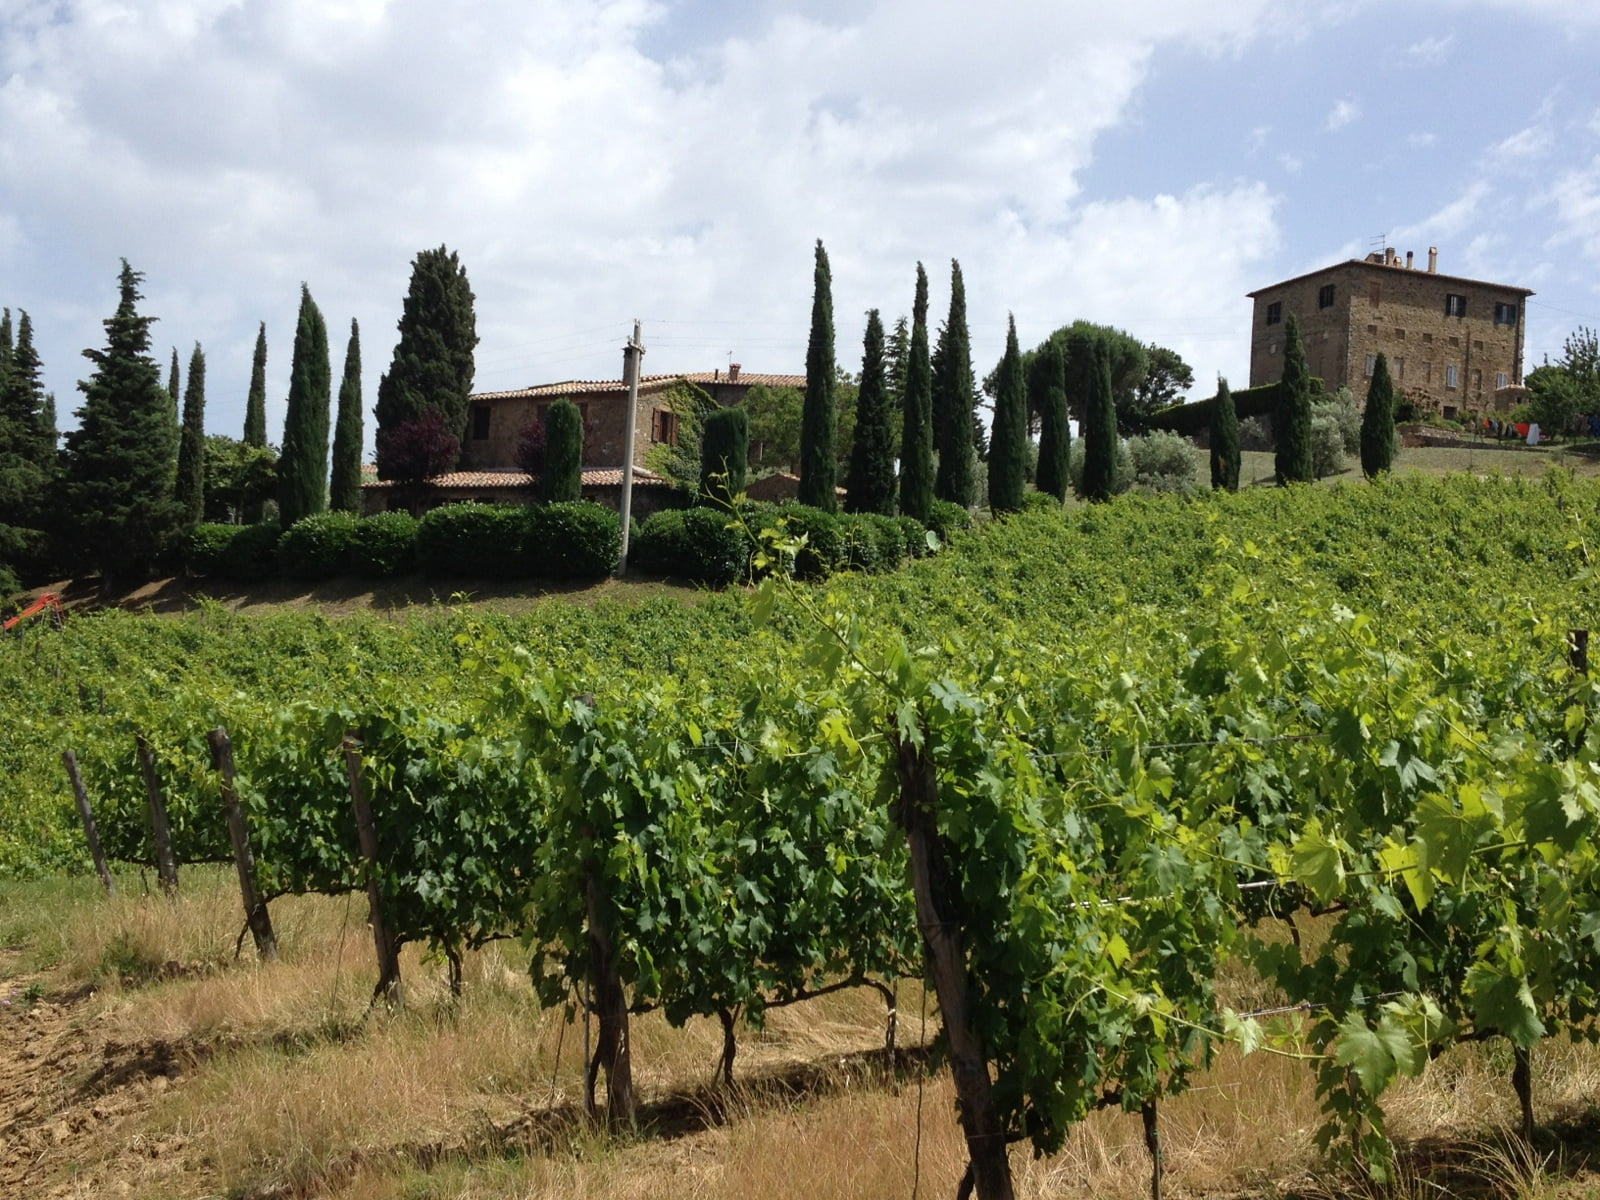 Rows of vines and villas in a Tuscan vineyard